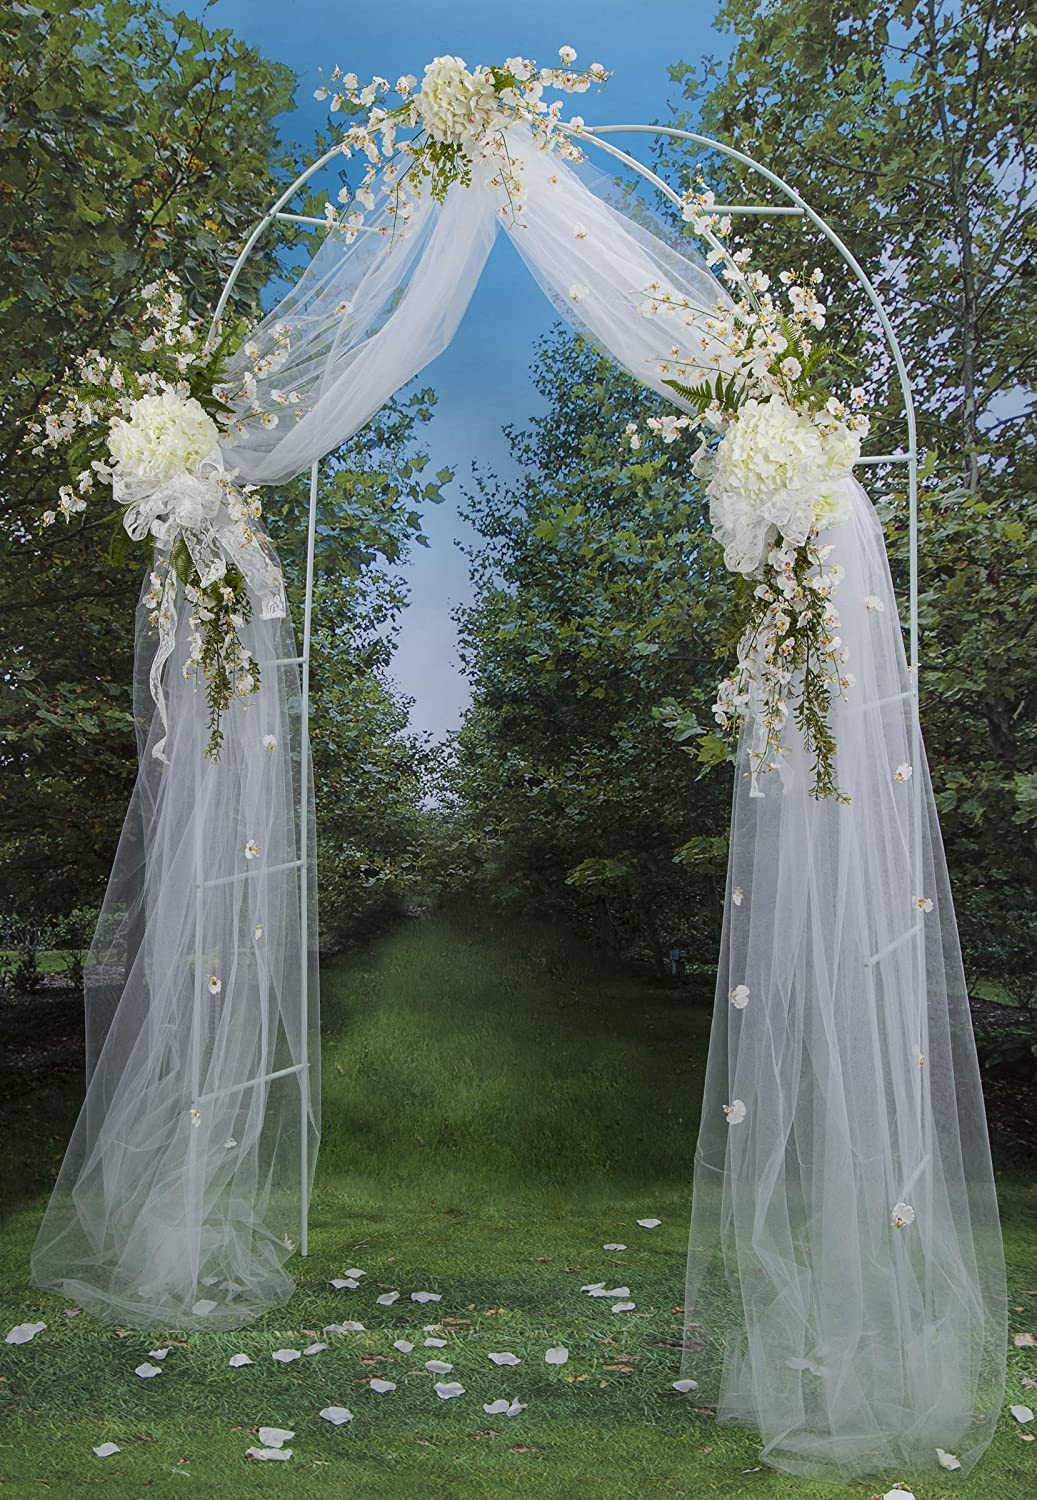 How To Make Diy Lighted Wedding Columns.Darice 5209 06 Victoria Lynn Lighted Decorative Wedding Arch 8 Feet White